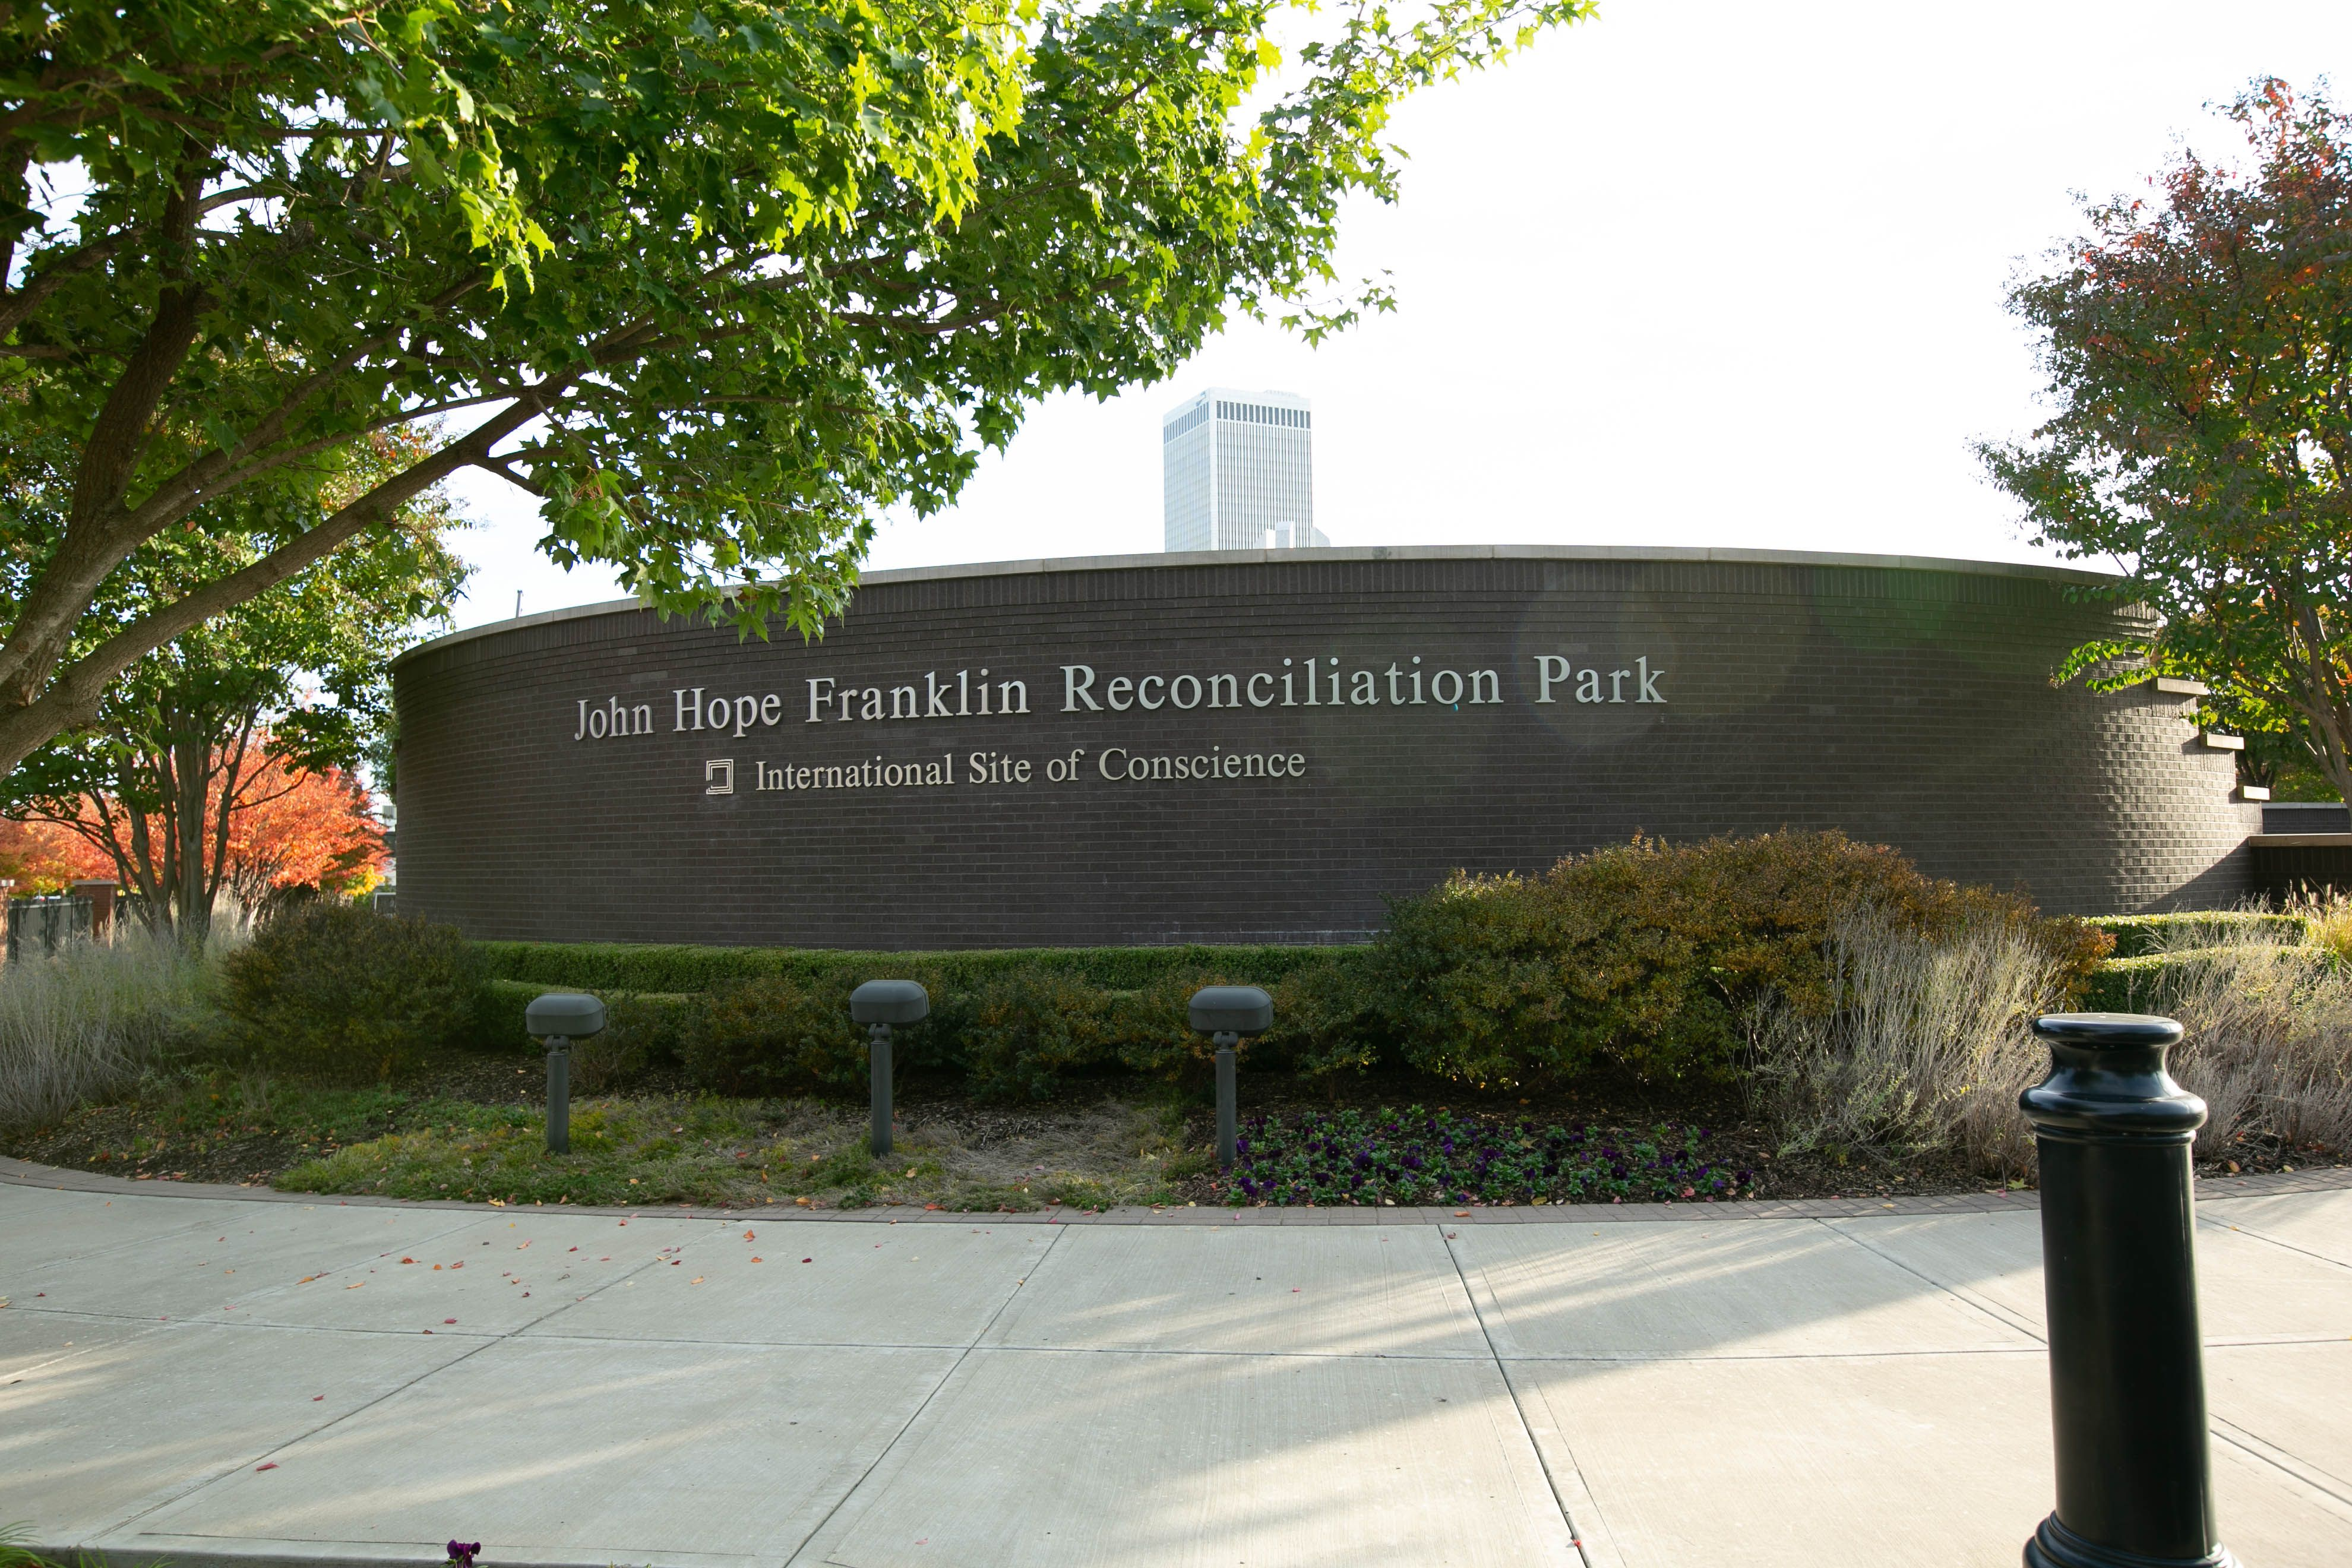 John Hope Franklin Reconciliation Park - International Site of Conscience